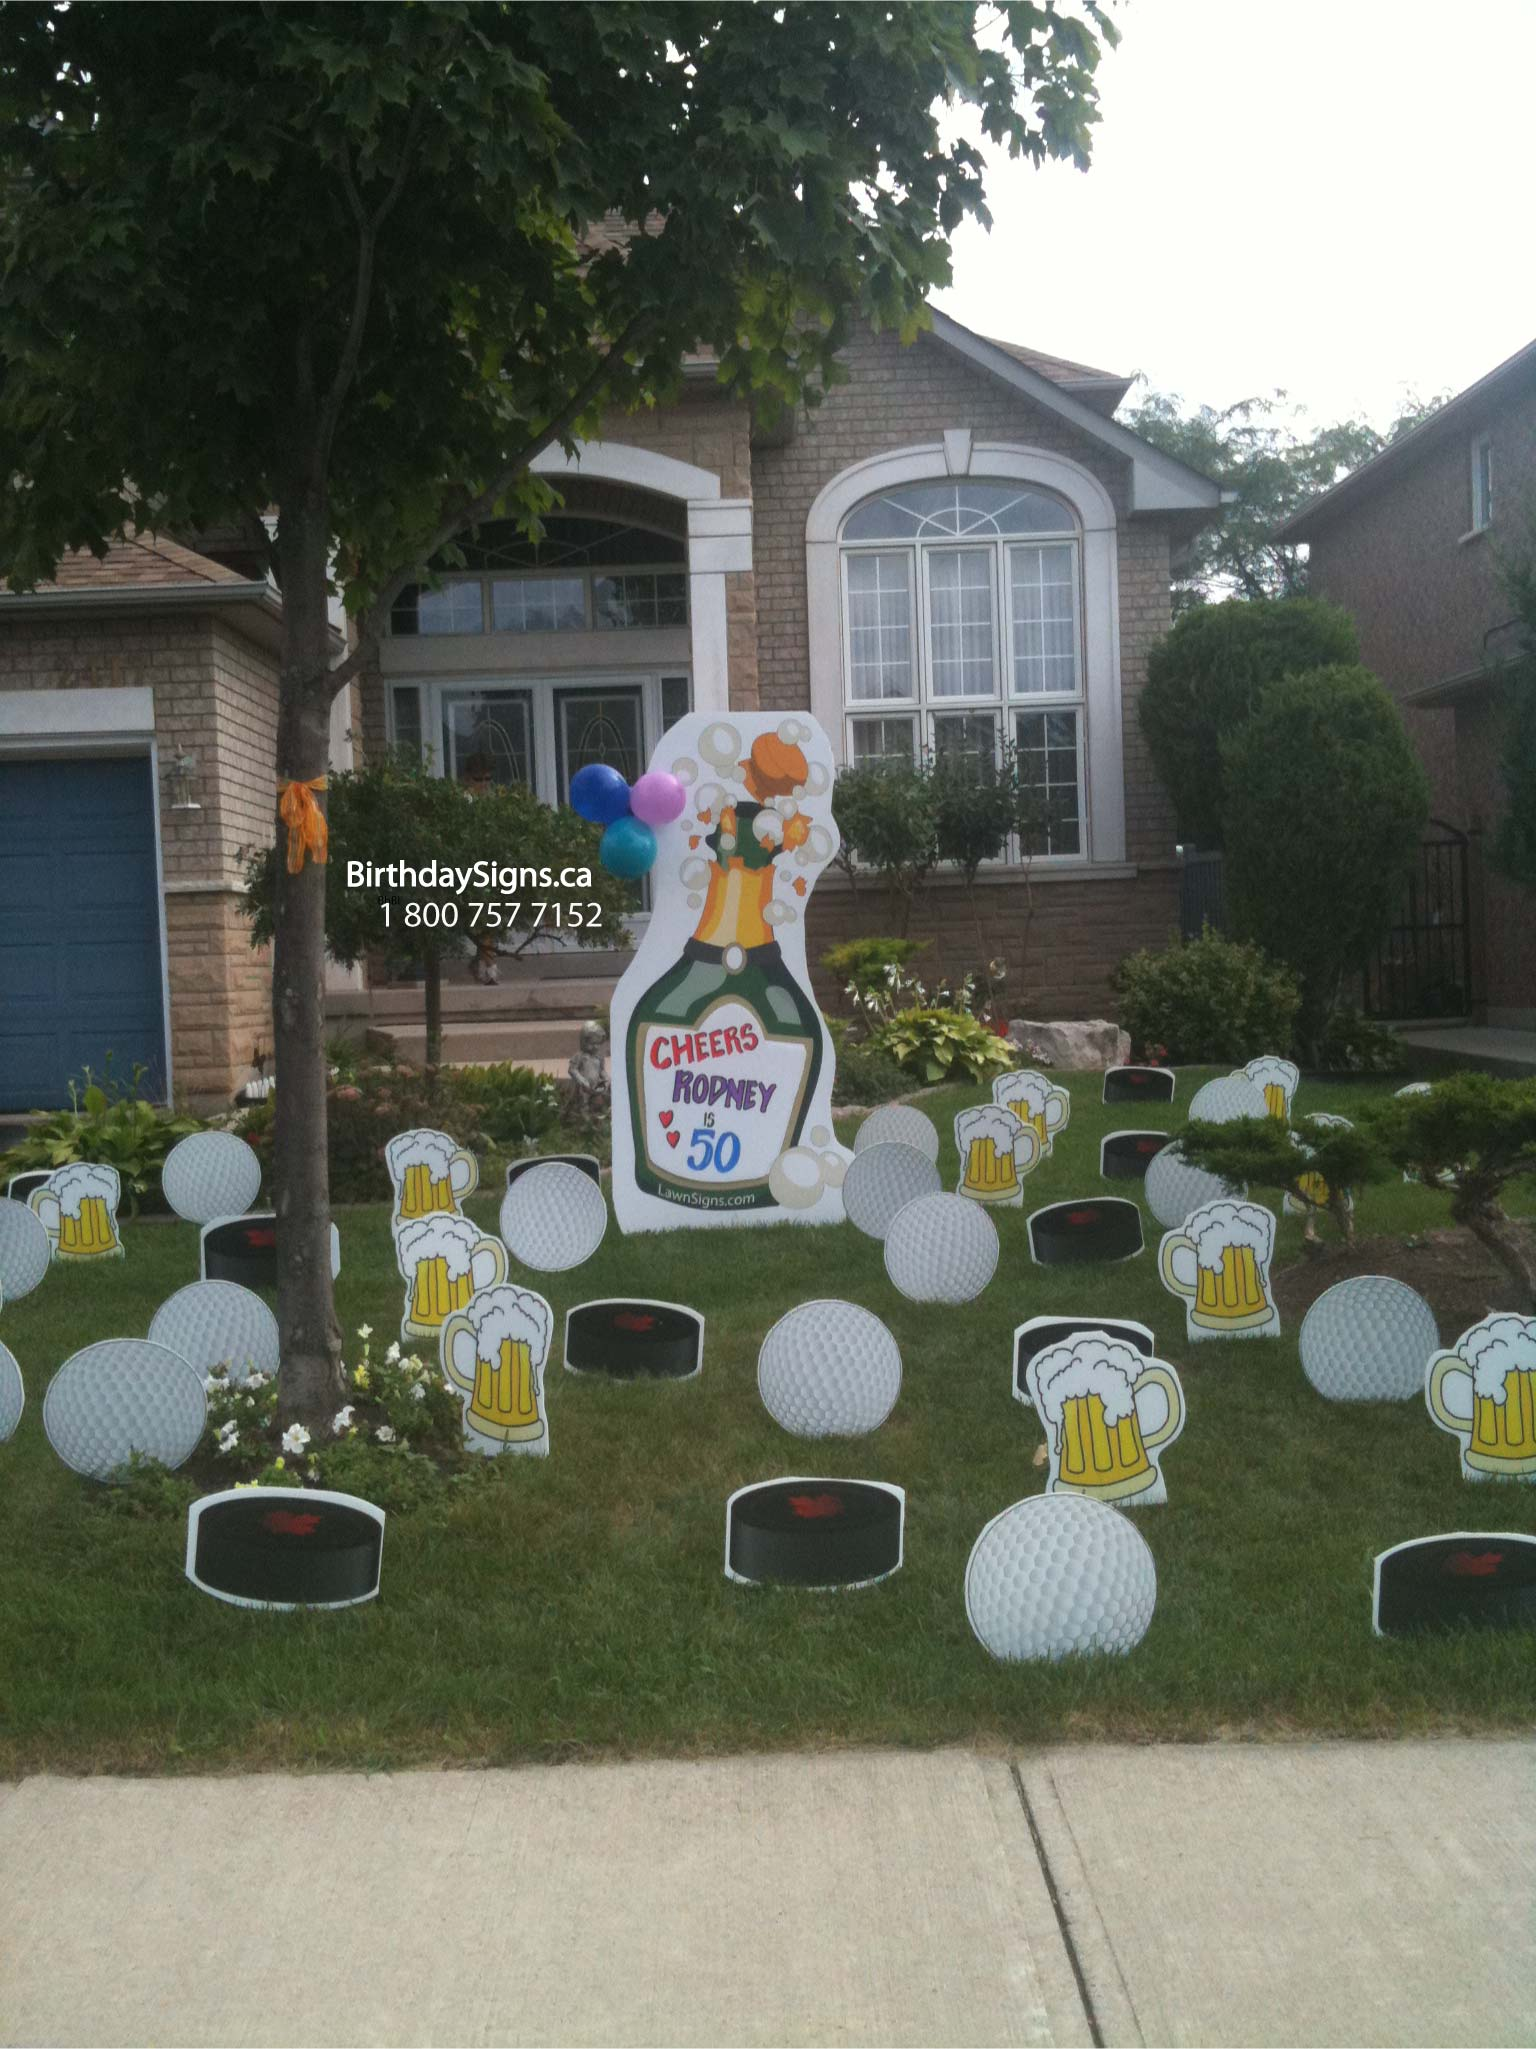 Gallery of Lawn Signs - Birthday Lawn Signs